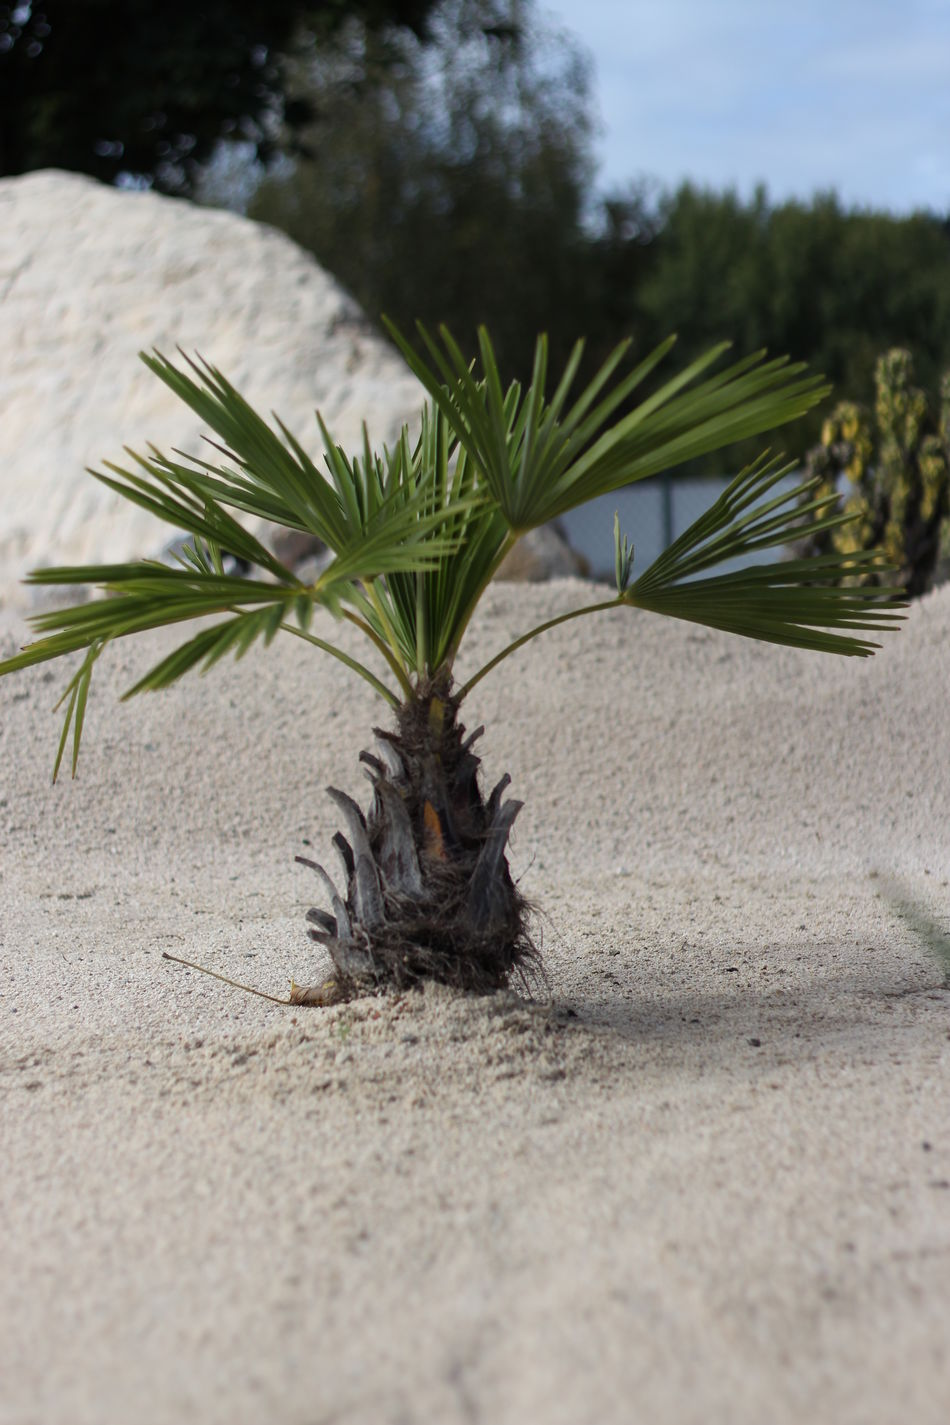 Plant Potted Plant Focus On Foreground Outdoors Green Beauty In Nature Tropical Tree No People 50mm Beauty In Nature Desert Close-up Leaf Minimundus